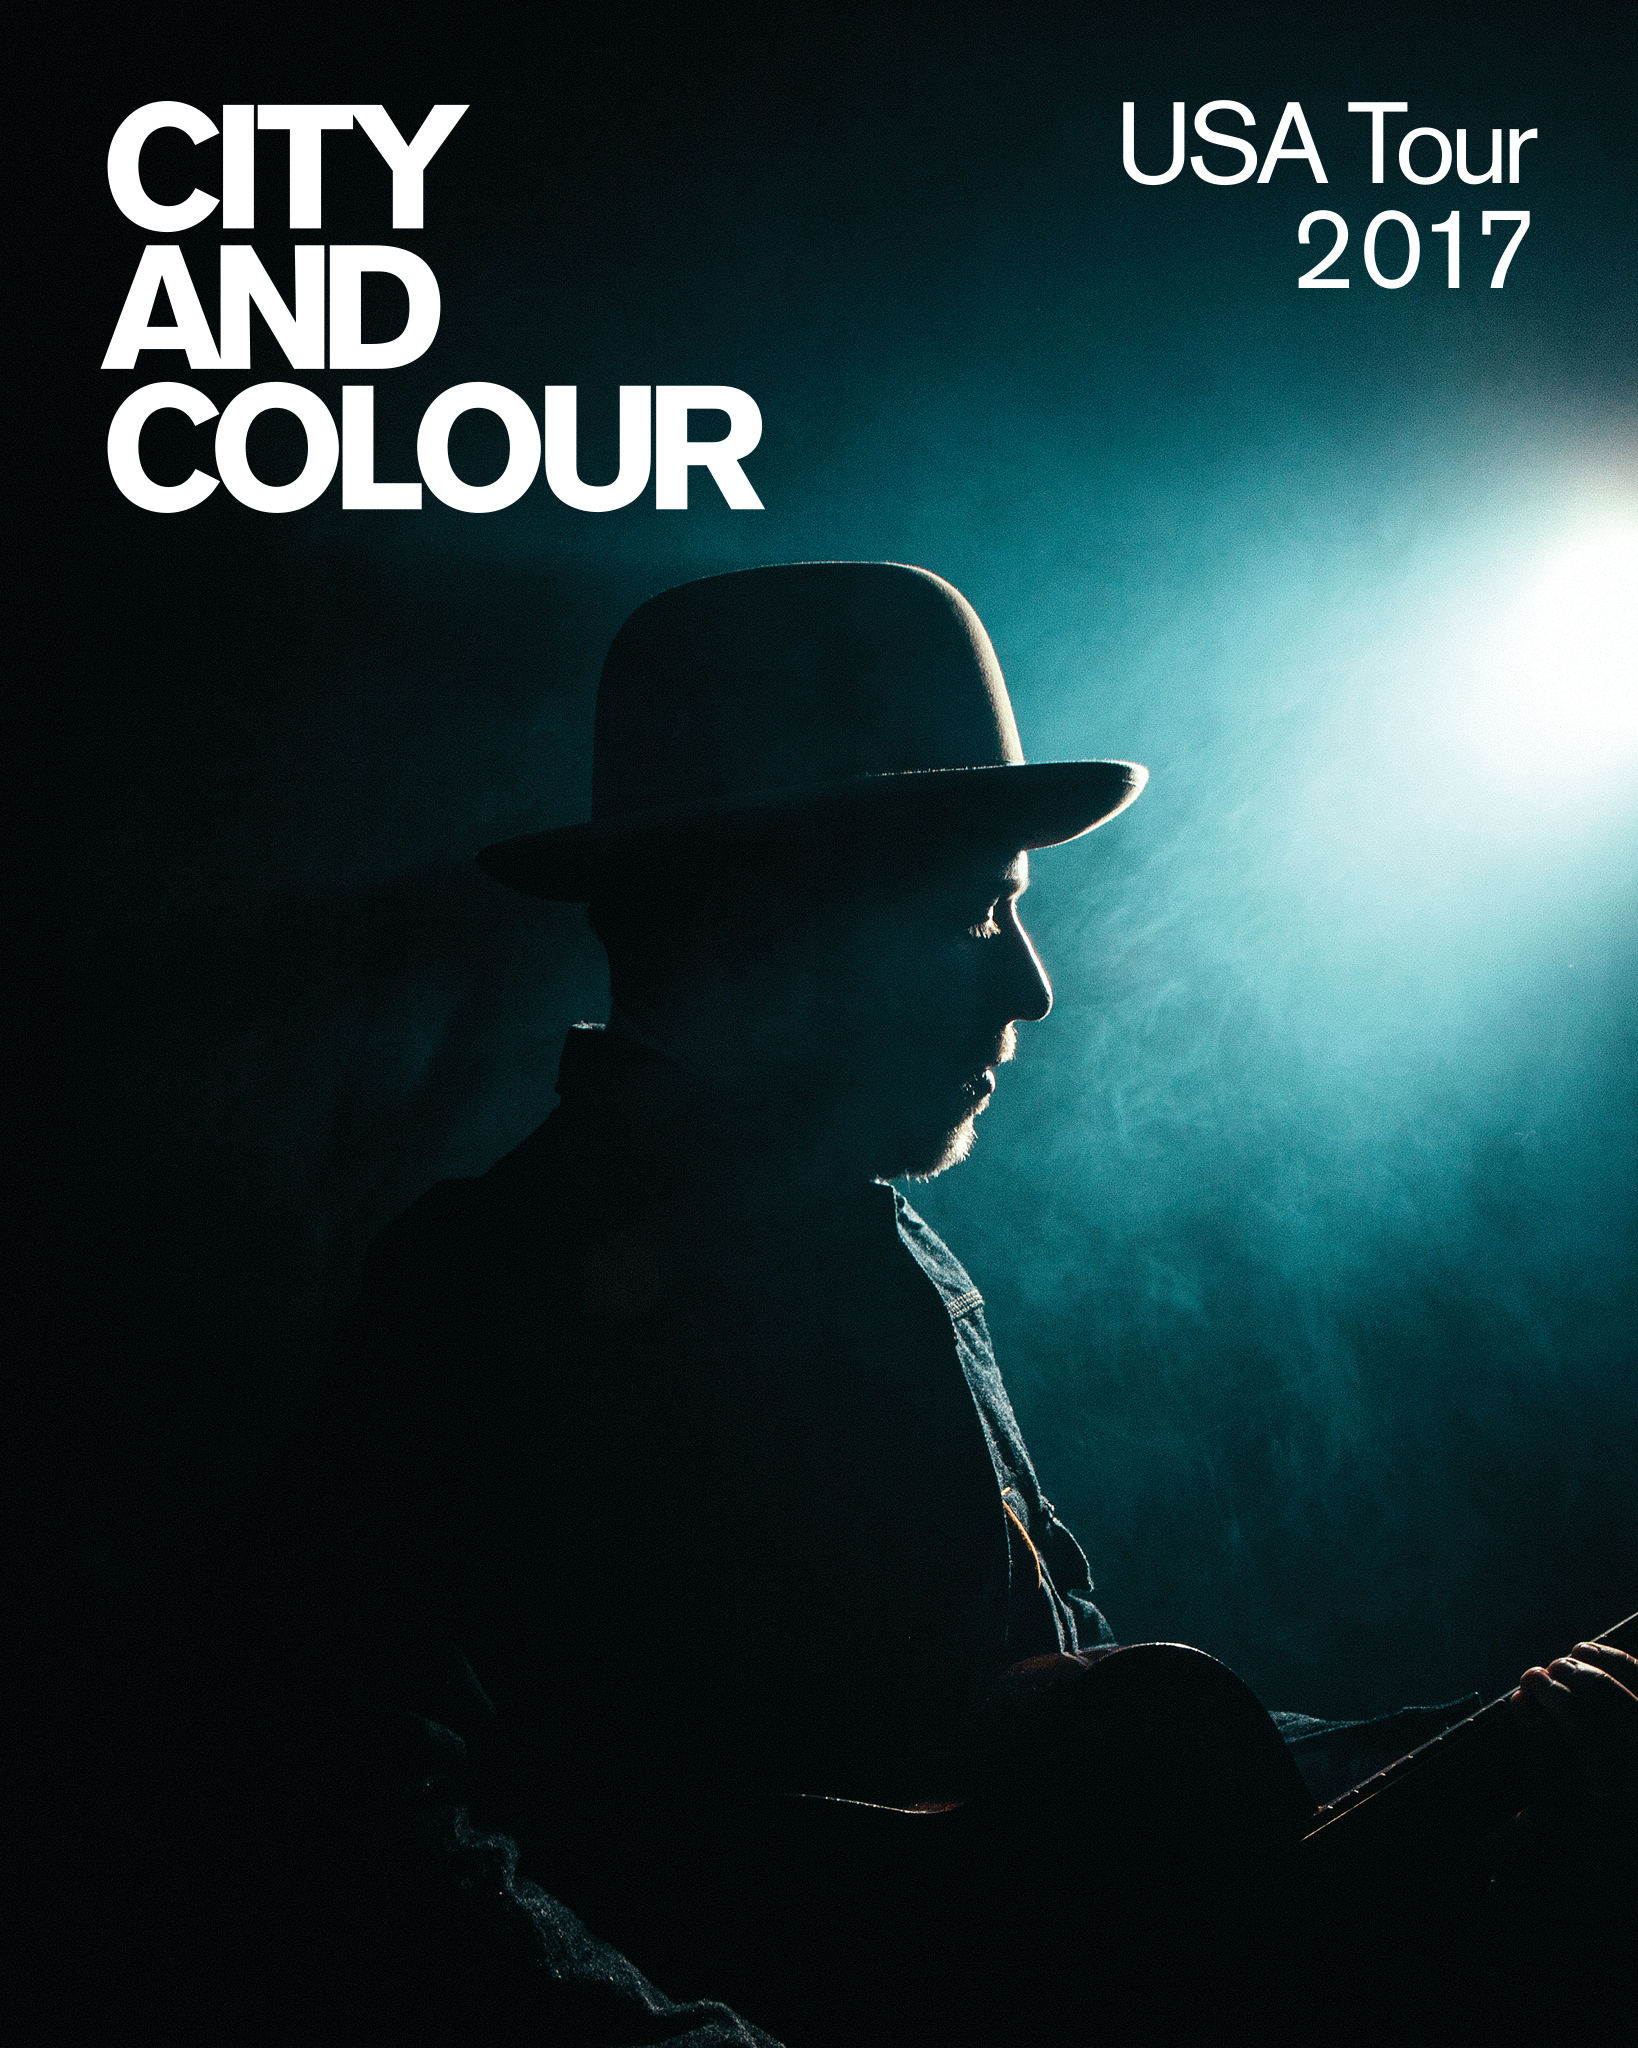 city and colour announces south eastern us tour dine alone records. Black Bedroom Furniture Sets. Home Design Ideas